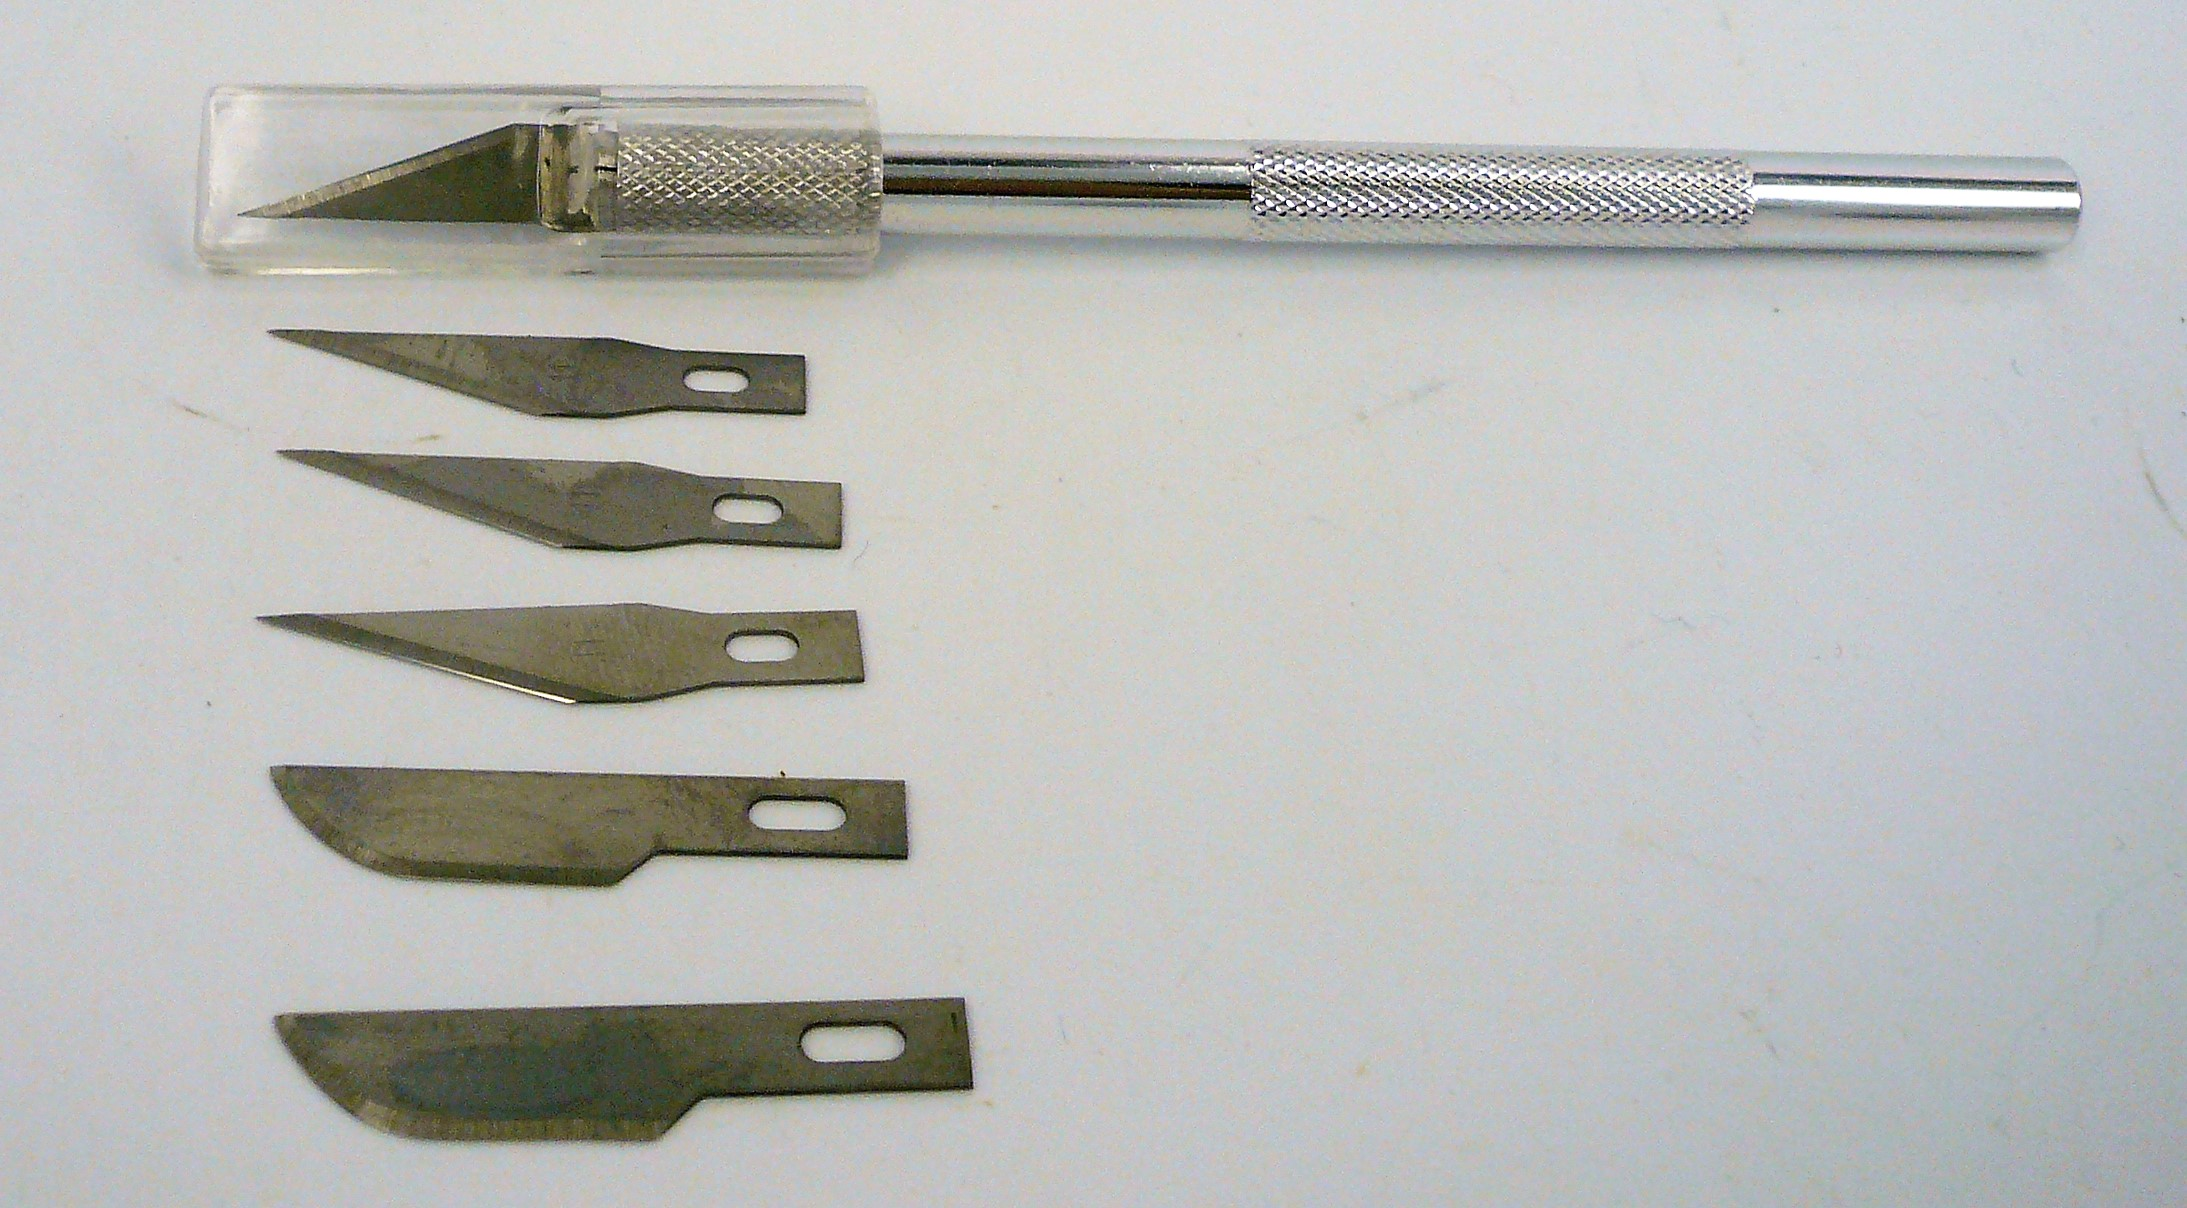 Model Expo #1 Hobby Knife w/ 6 blades ( 4 x #11 & 2 x #10)